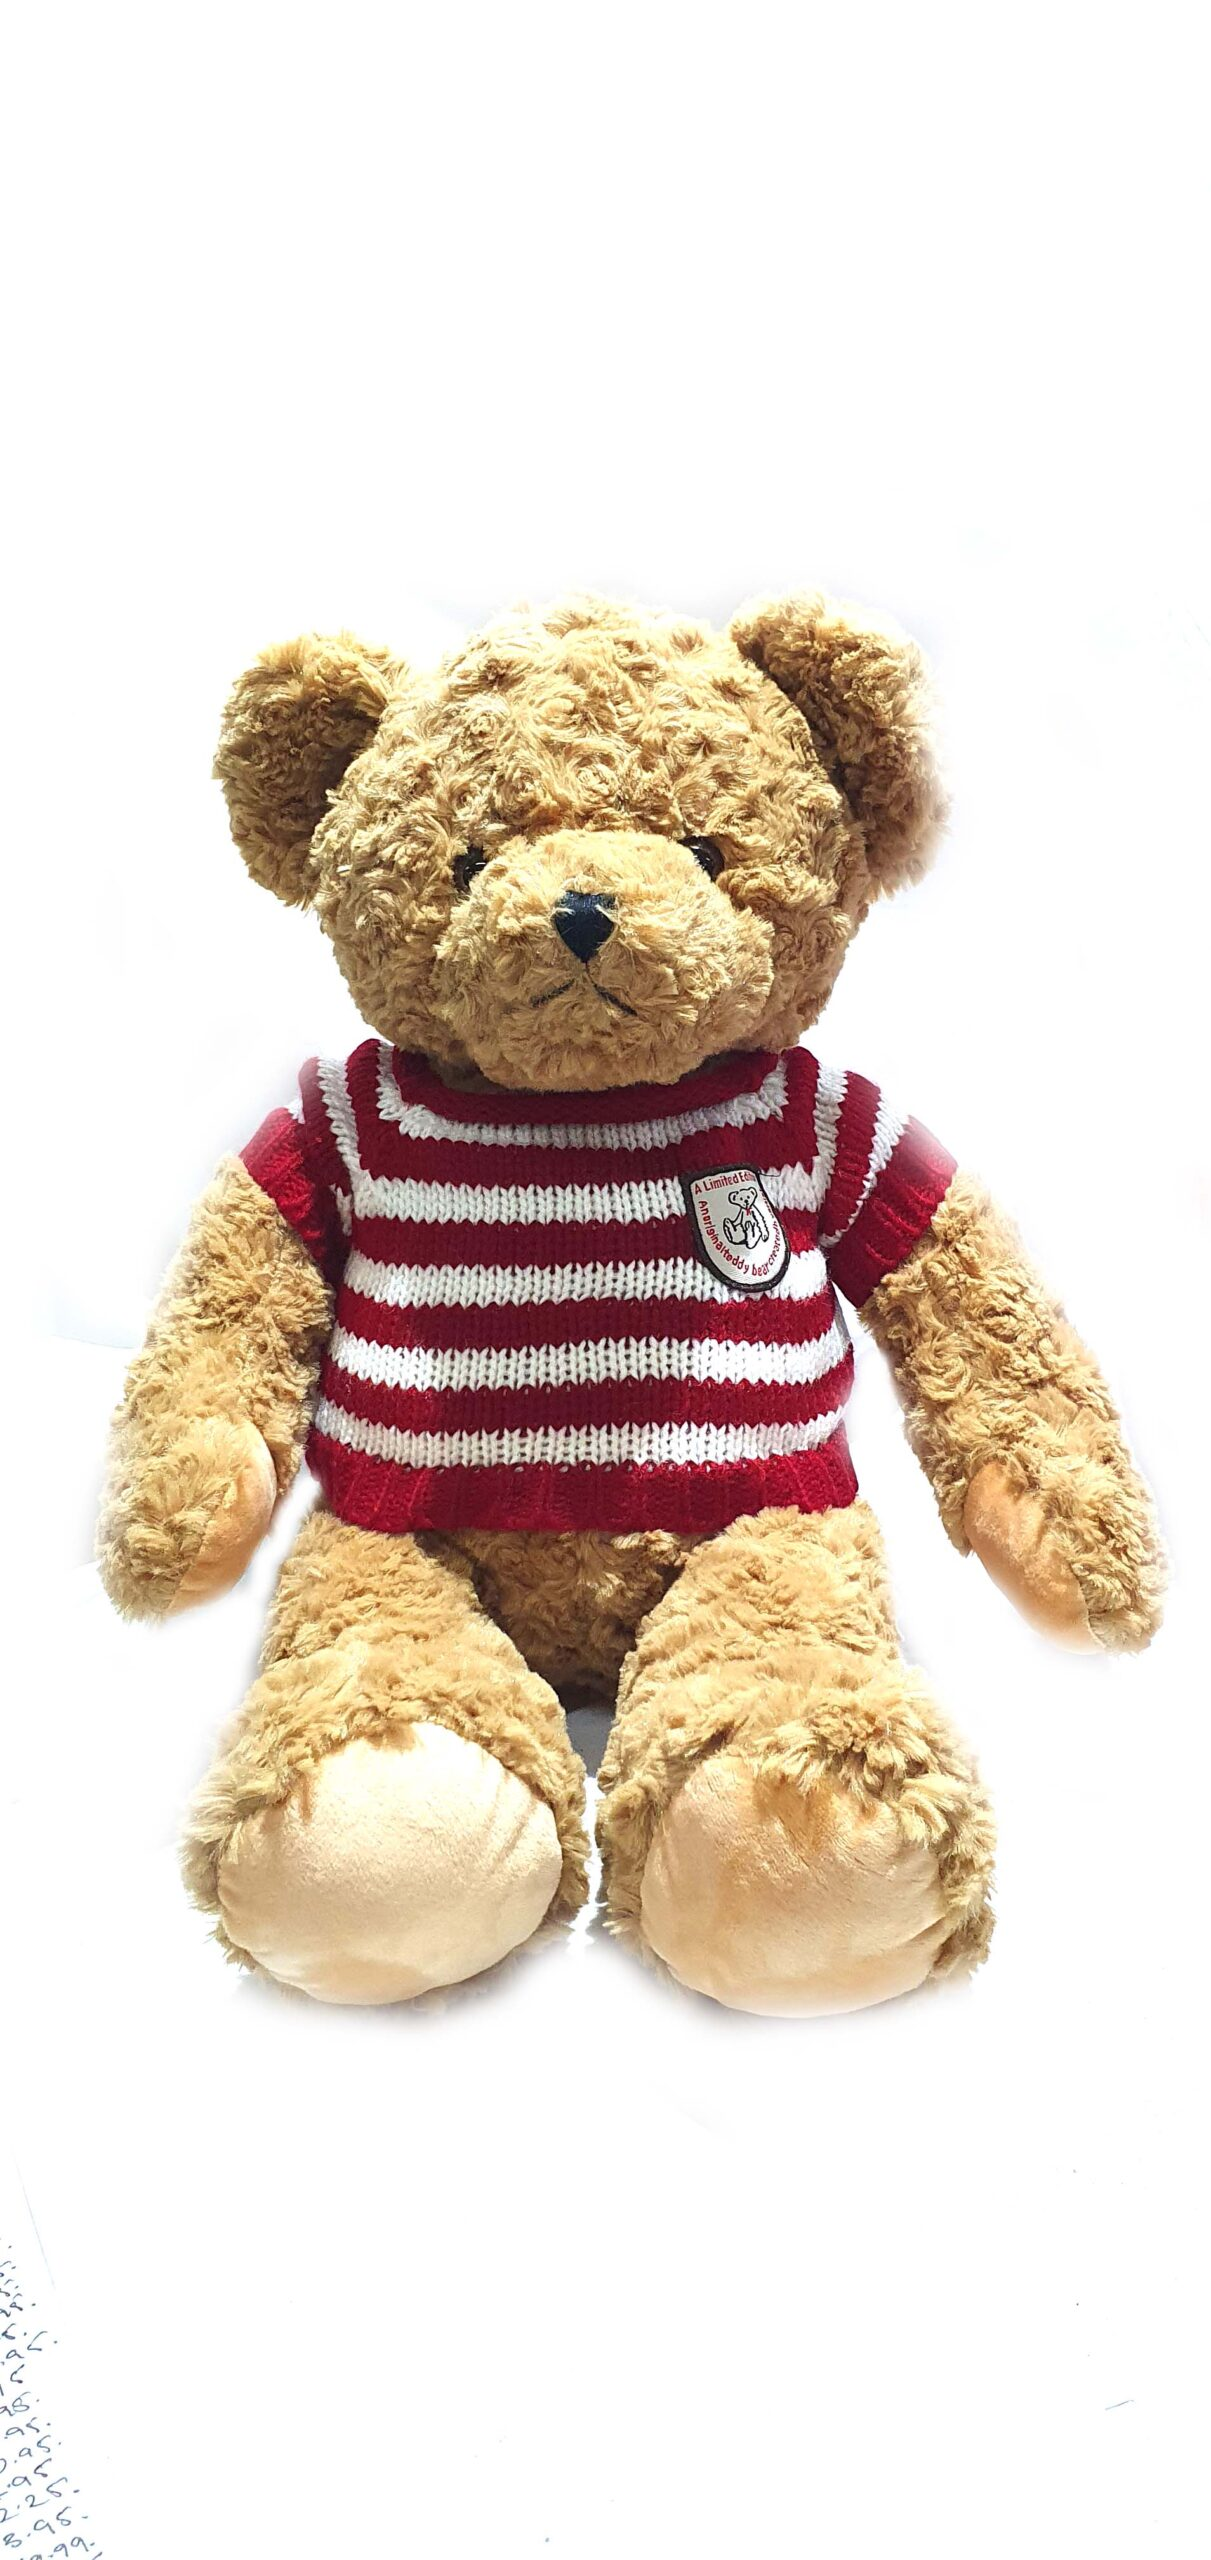 Plush Toys Dressed Bear #41909085011 -GLB